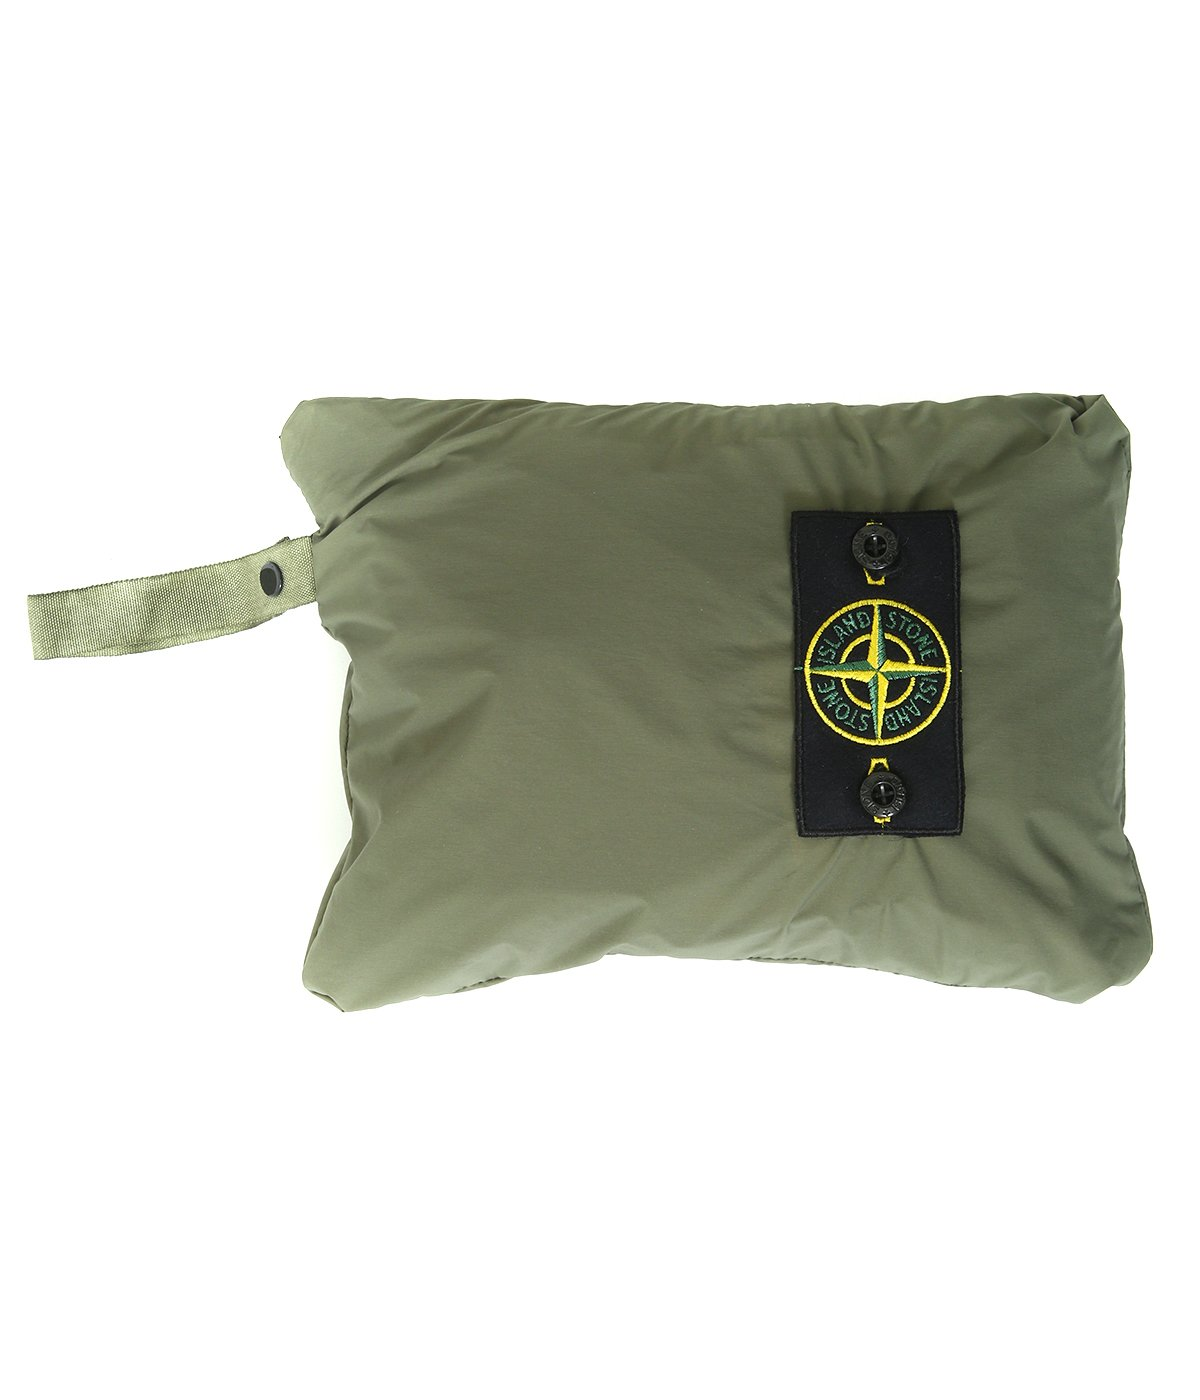 SKIN TOUCH NYLON TC PACKABLE PO